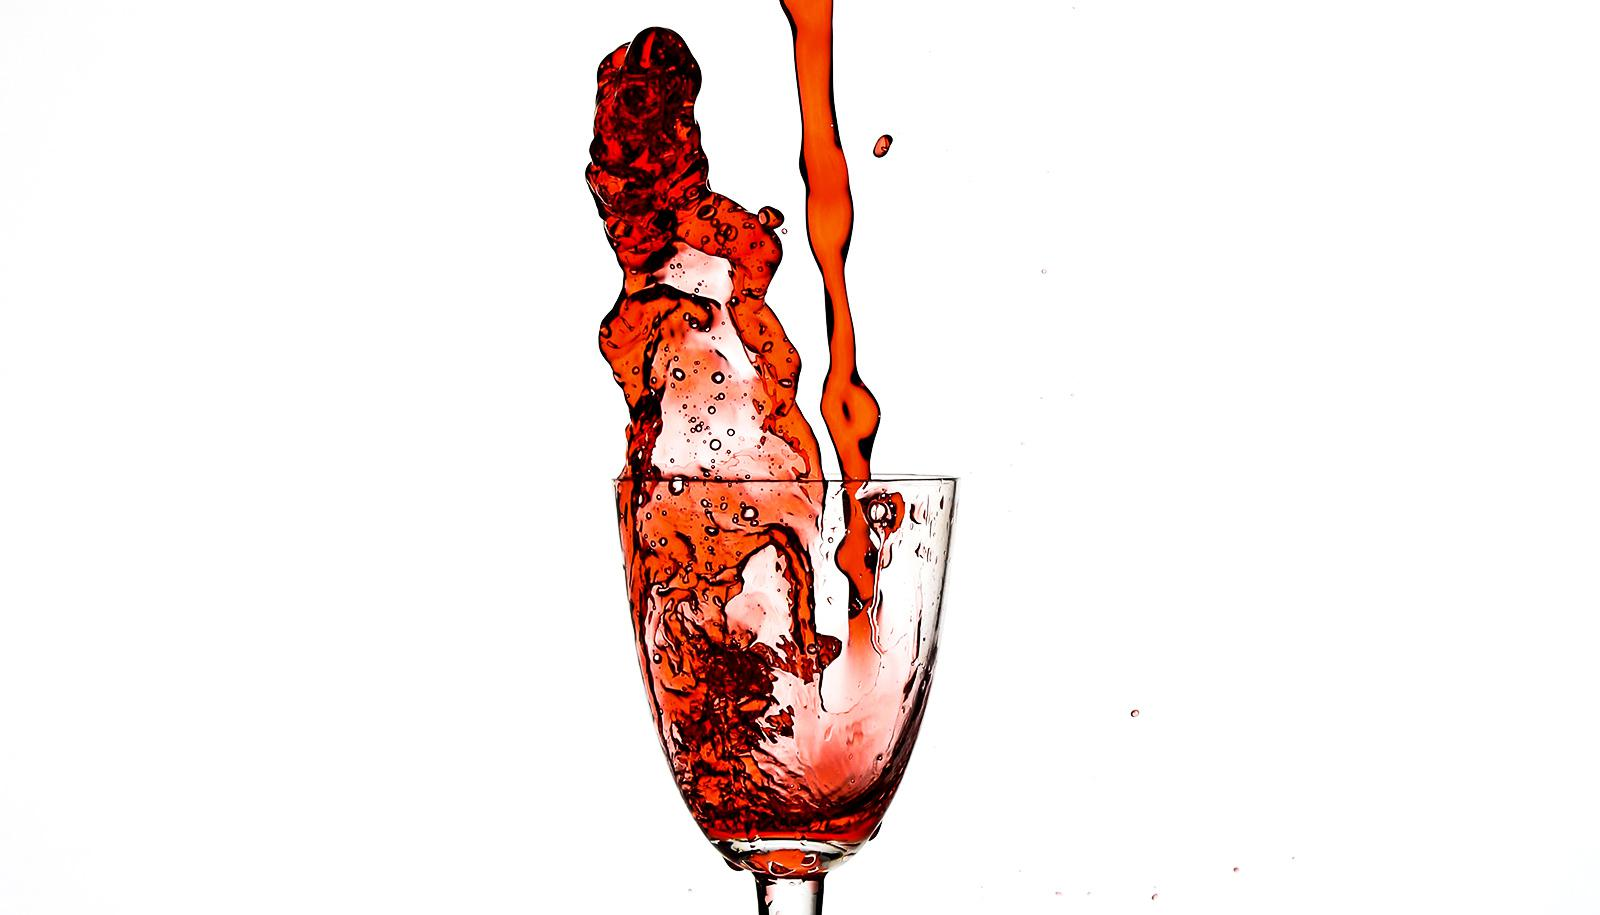 Red wine pours into a glass and then splashes out